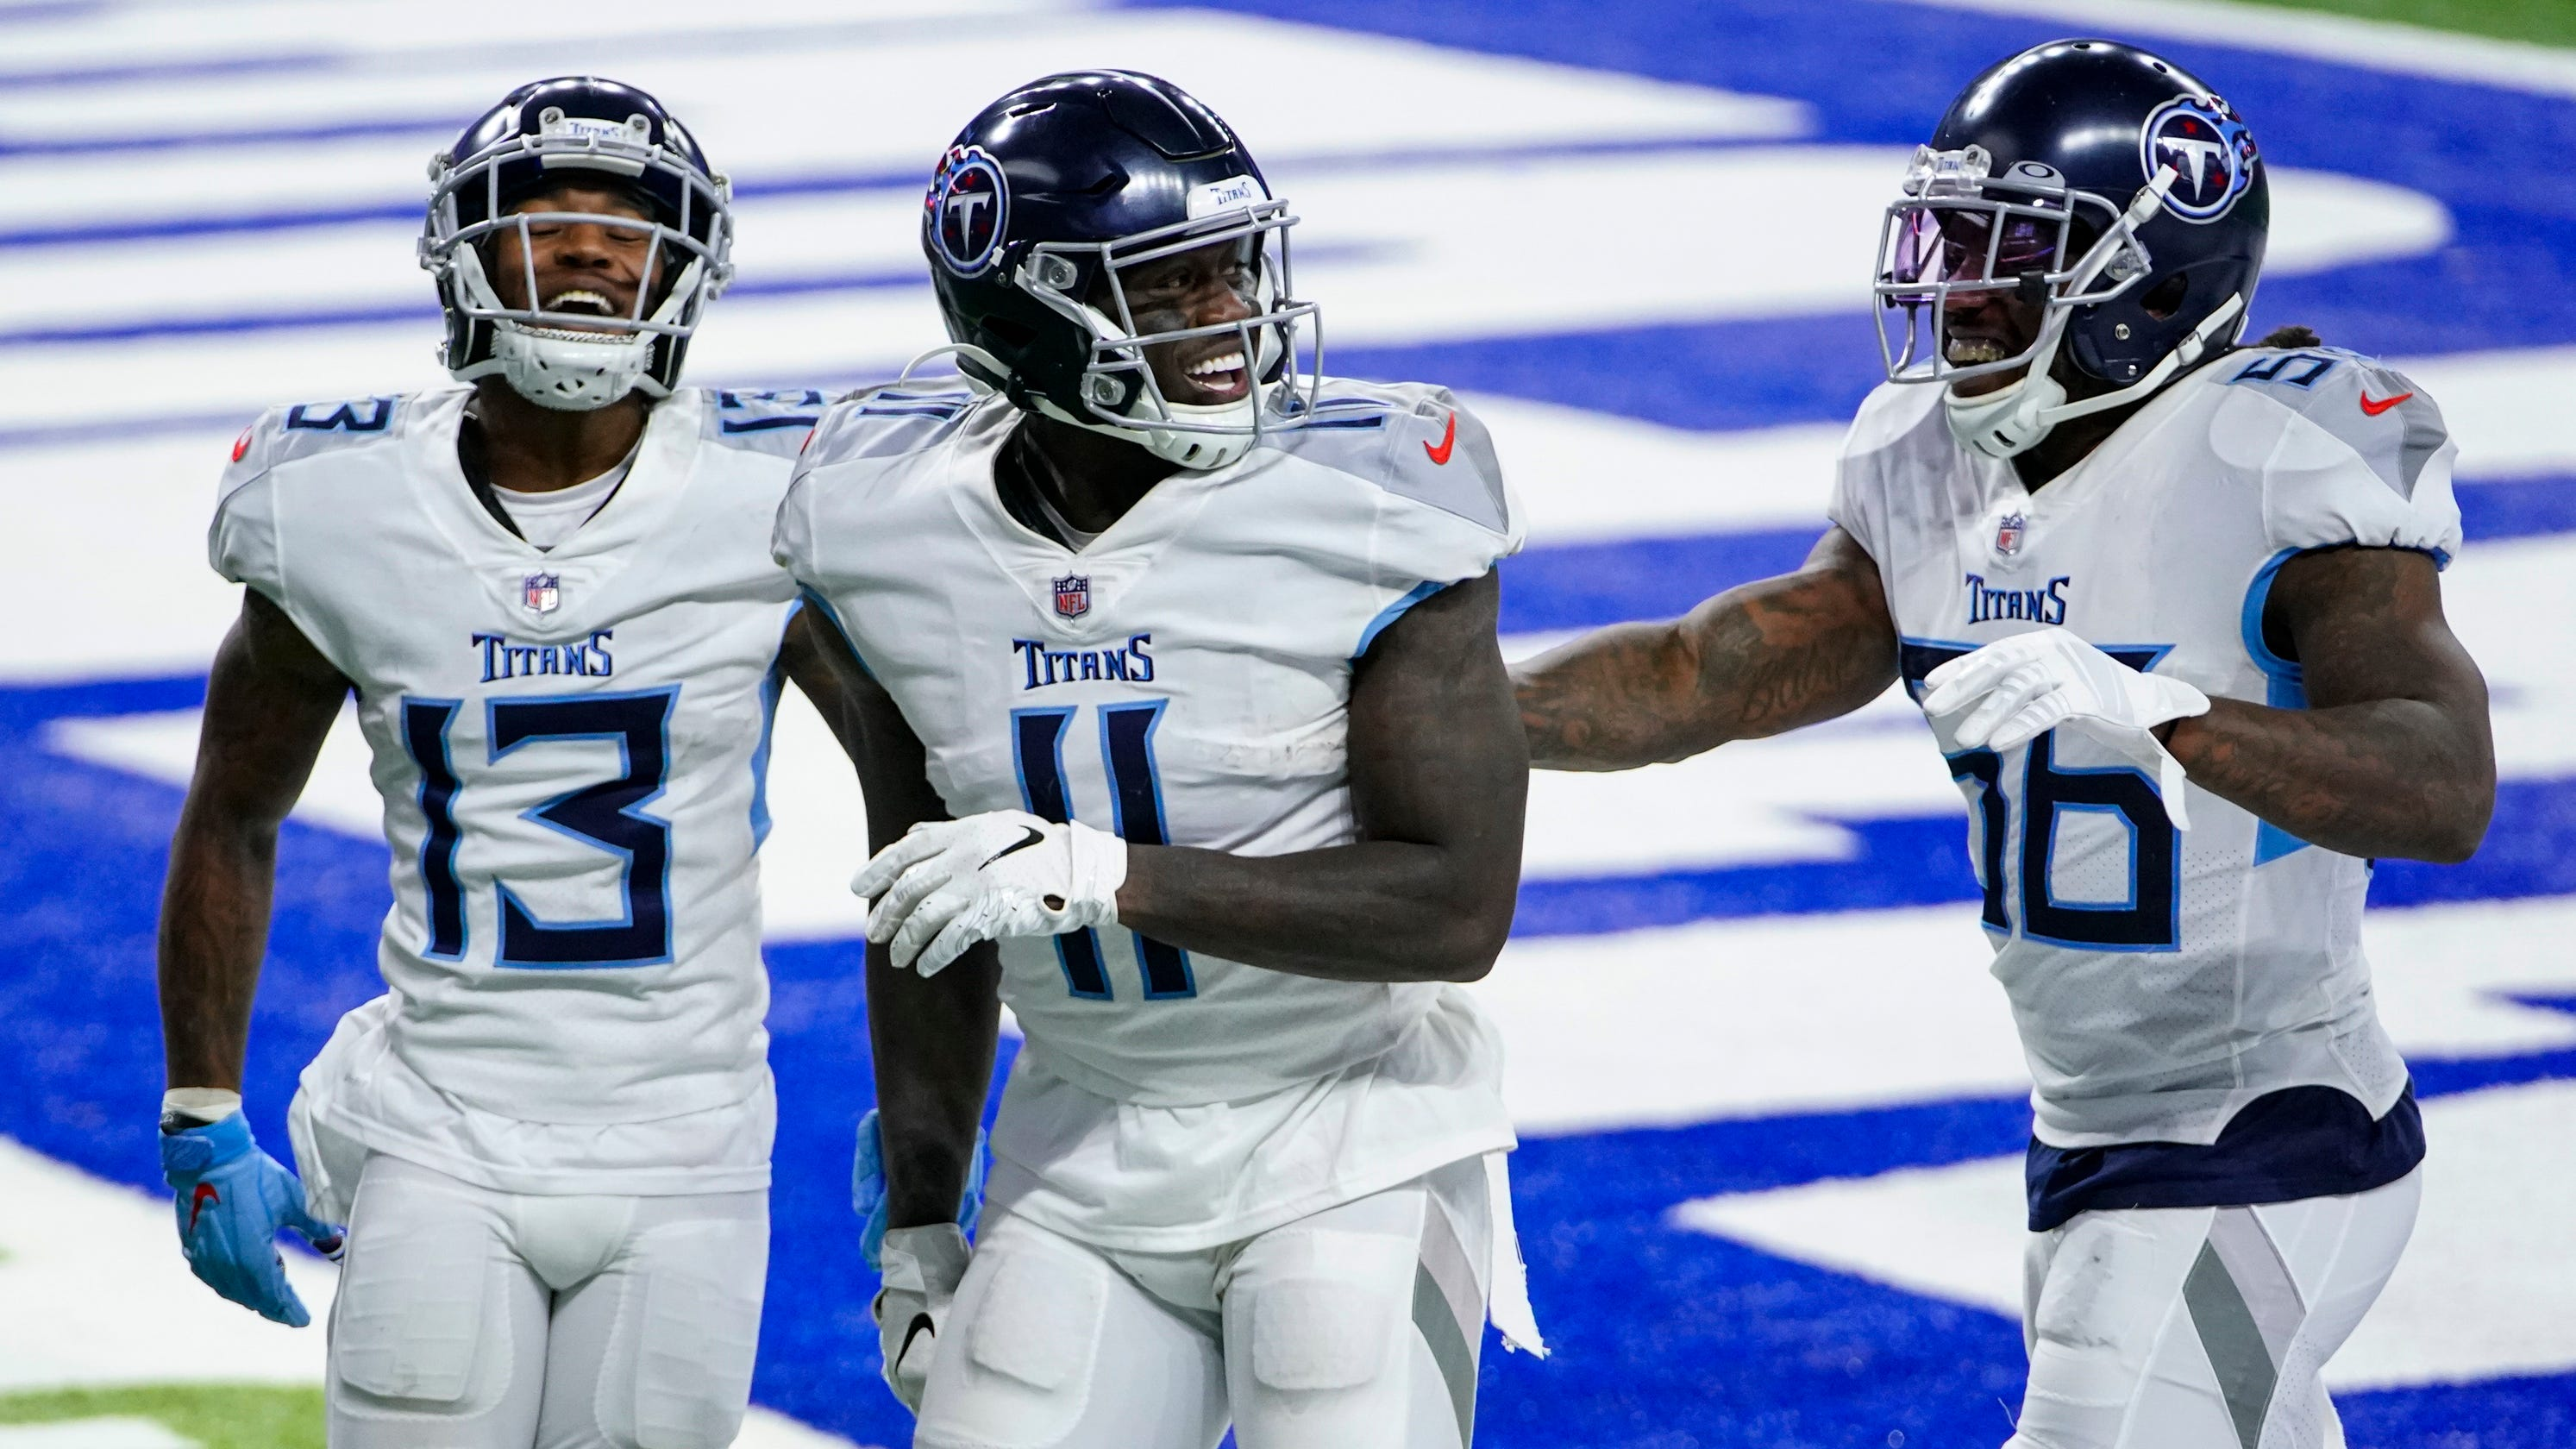 NFL playoff picture after Week 12: Titans take control in AFC South – USA TODAY